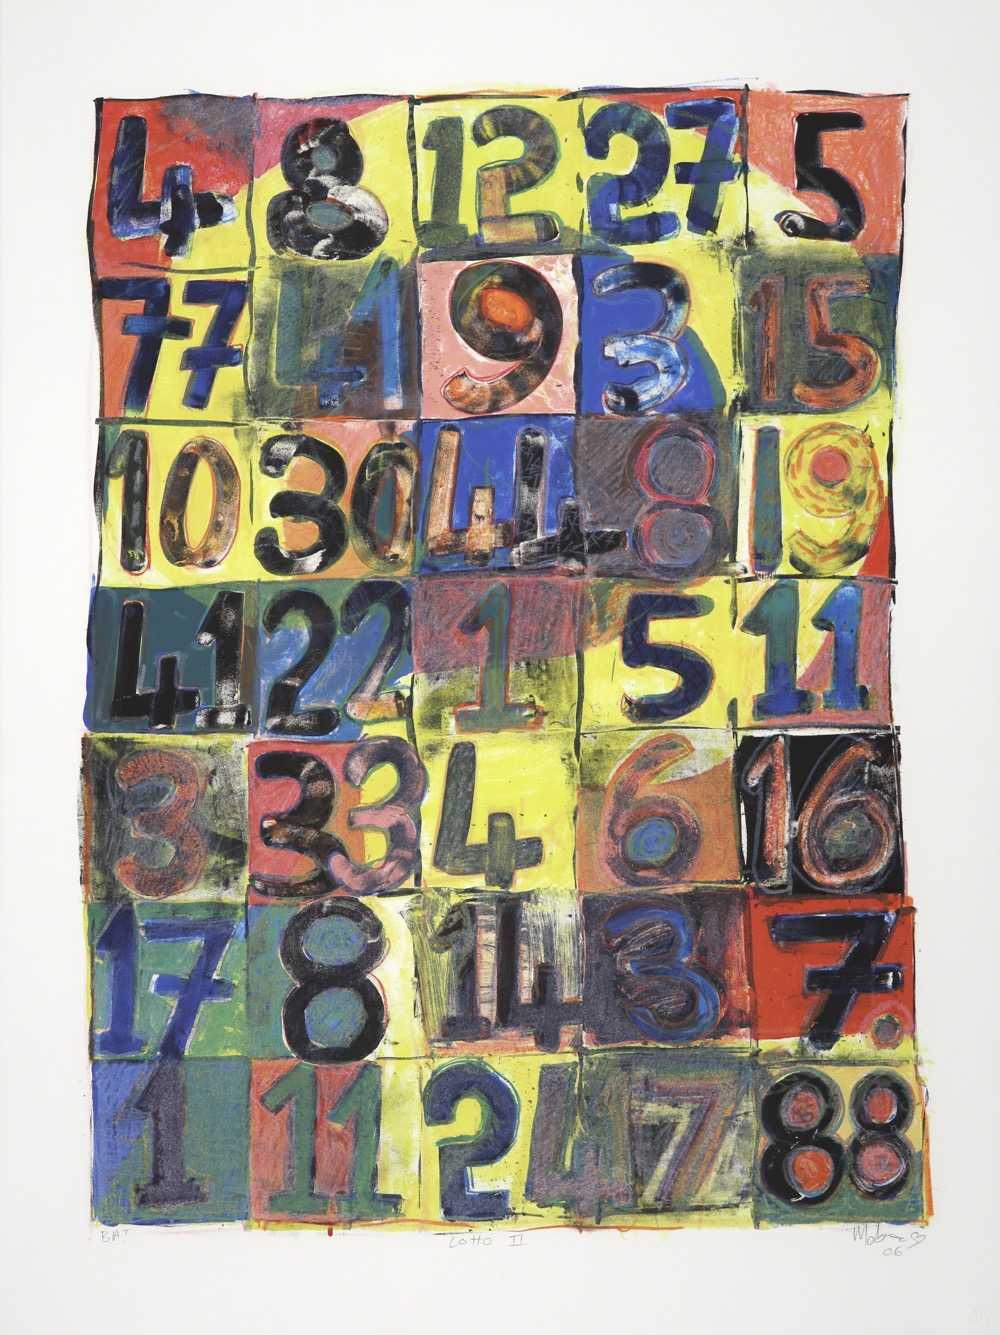 The surface of the print is divided into squares with a numeral in each one